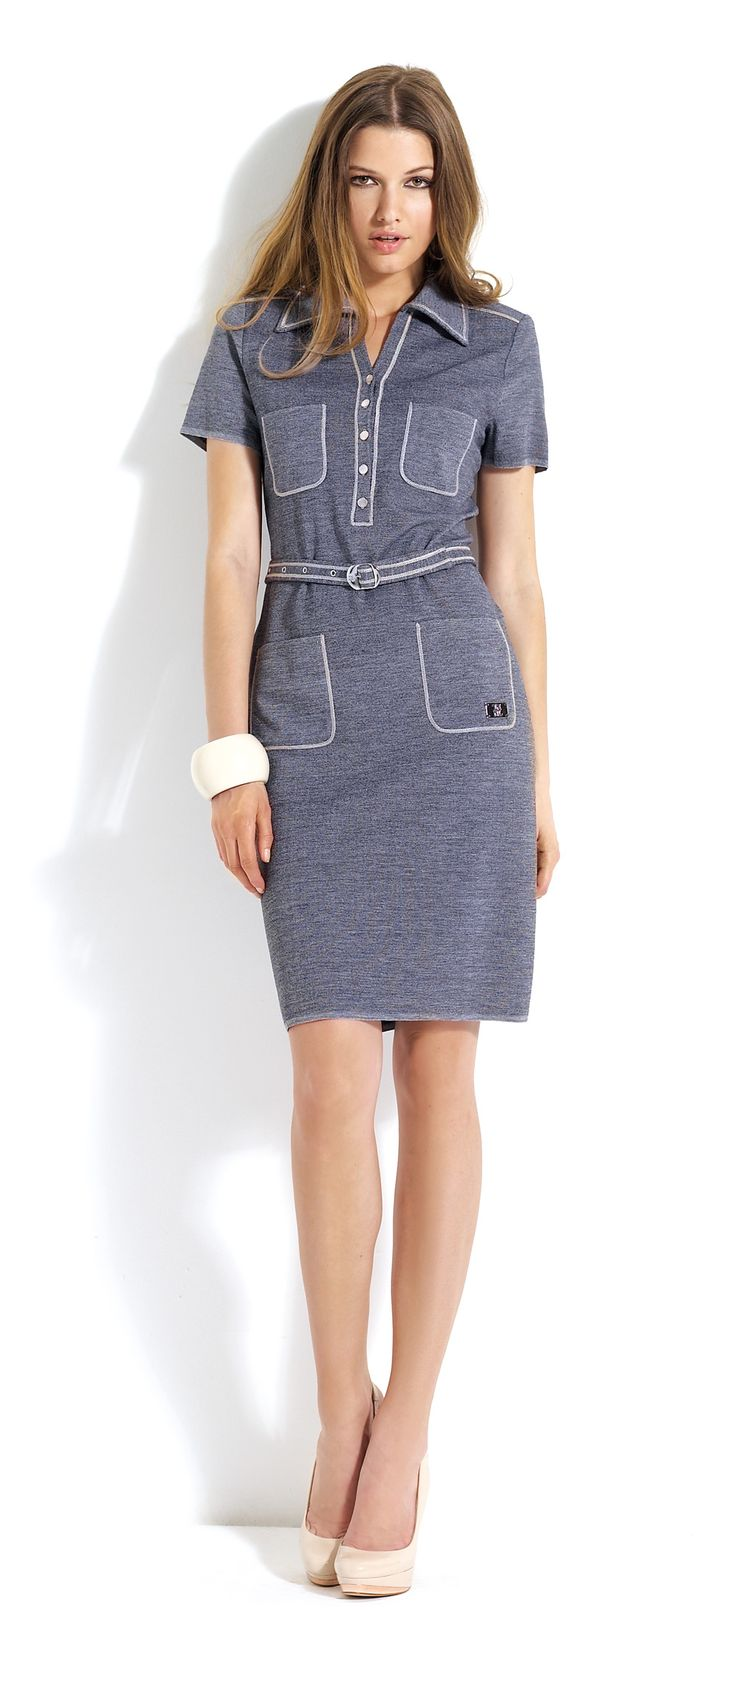 Vestido tejano con bolsillos #dress #jeans #pockets